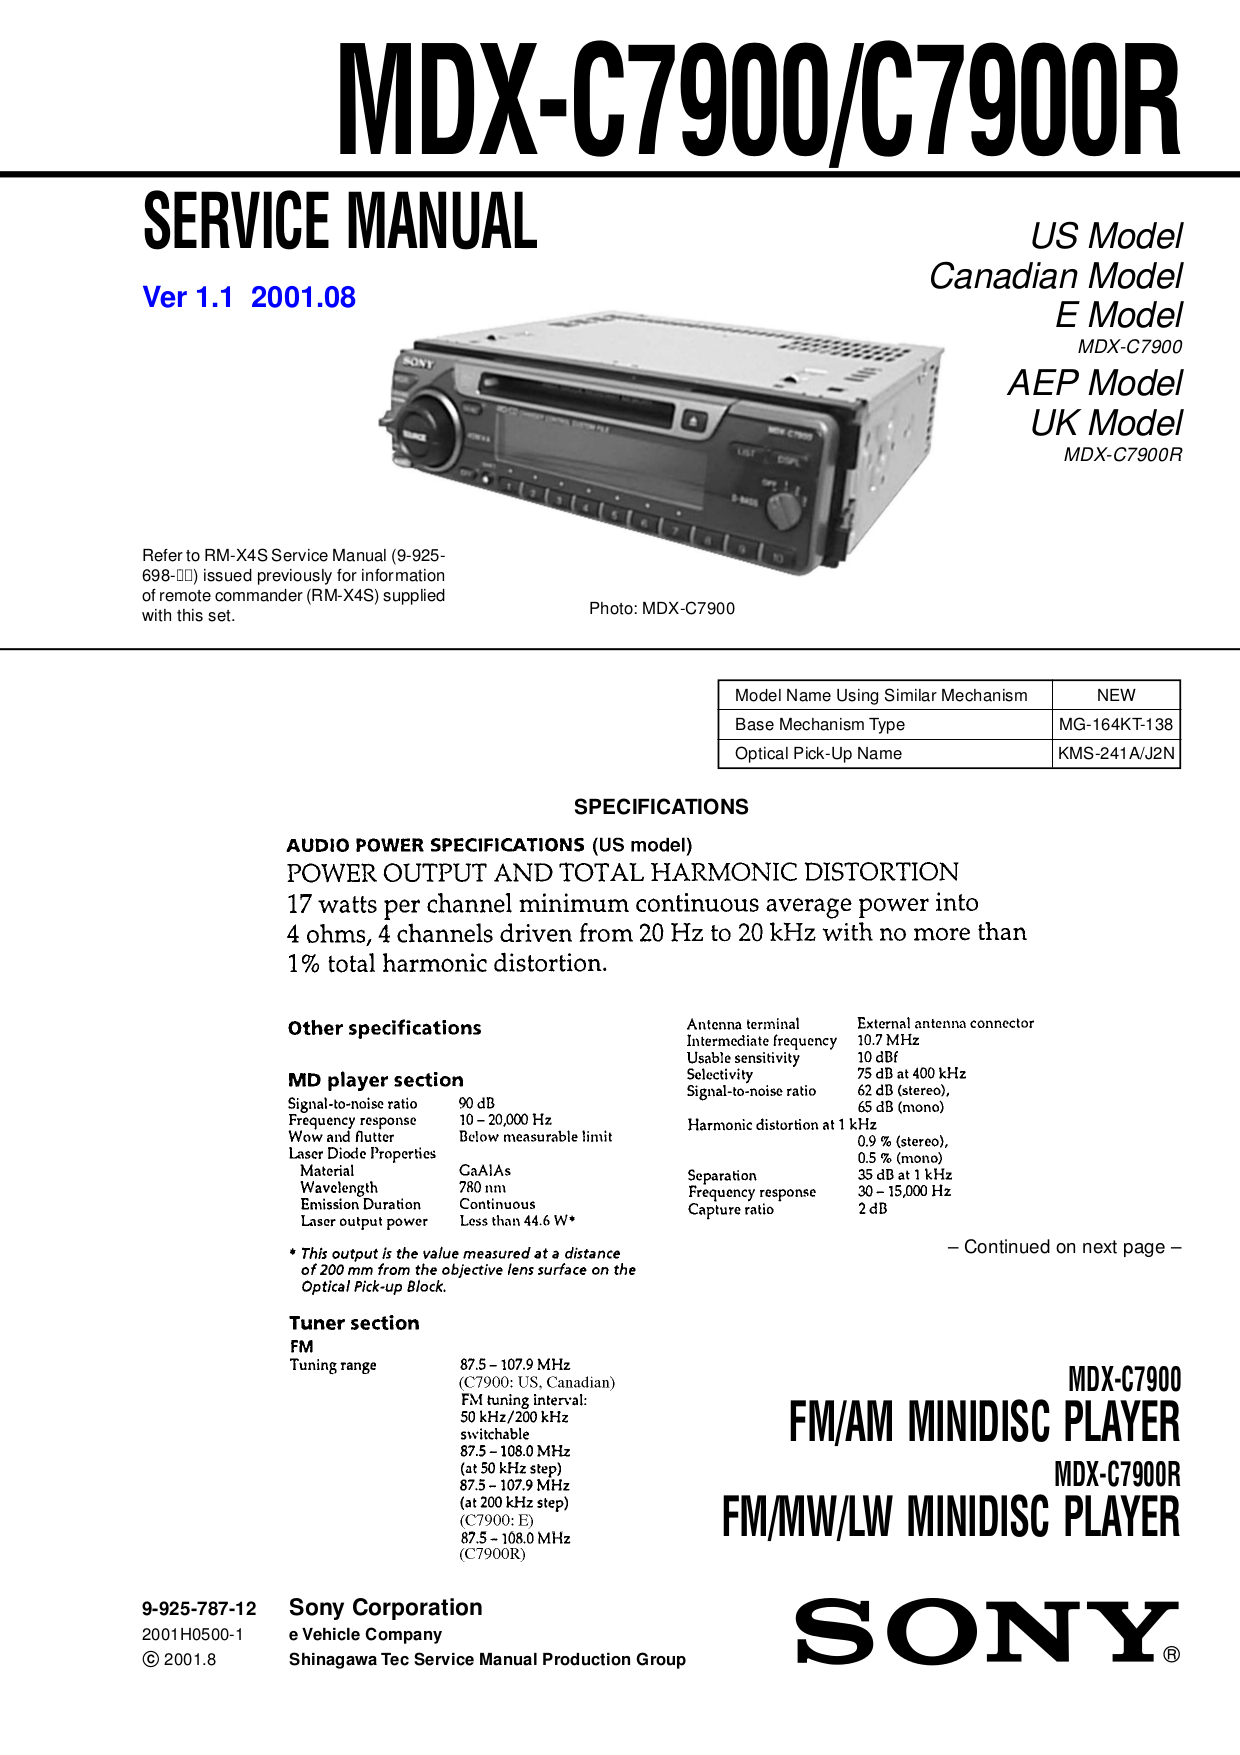 panasonic service manual free download